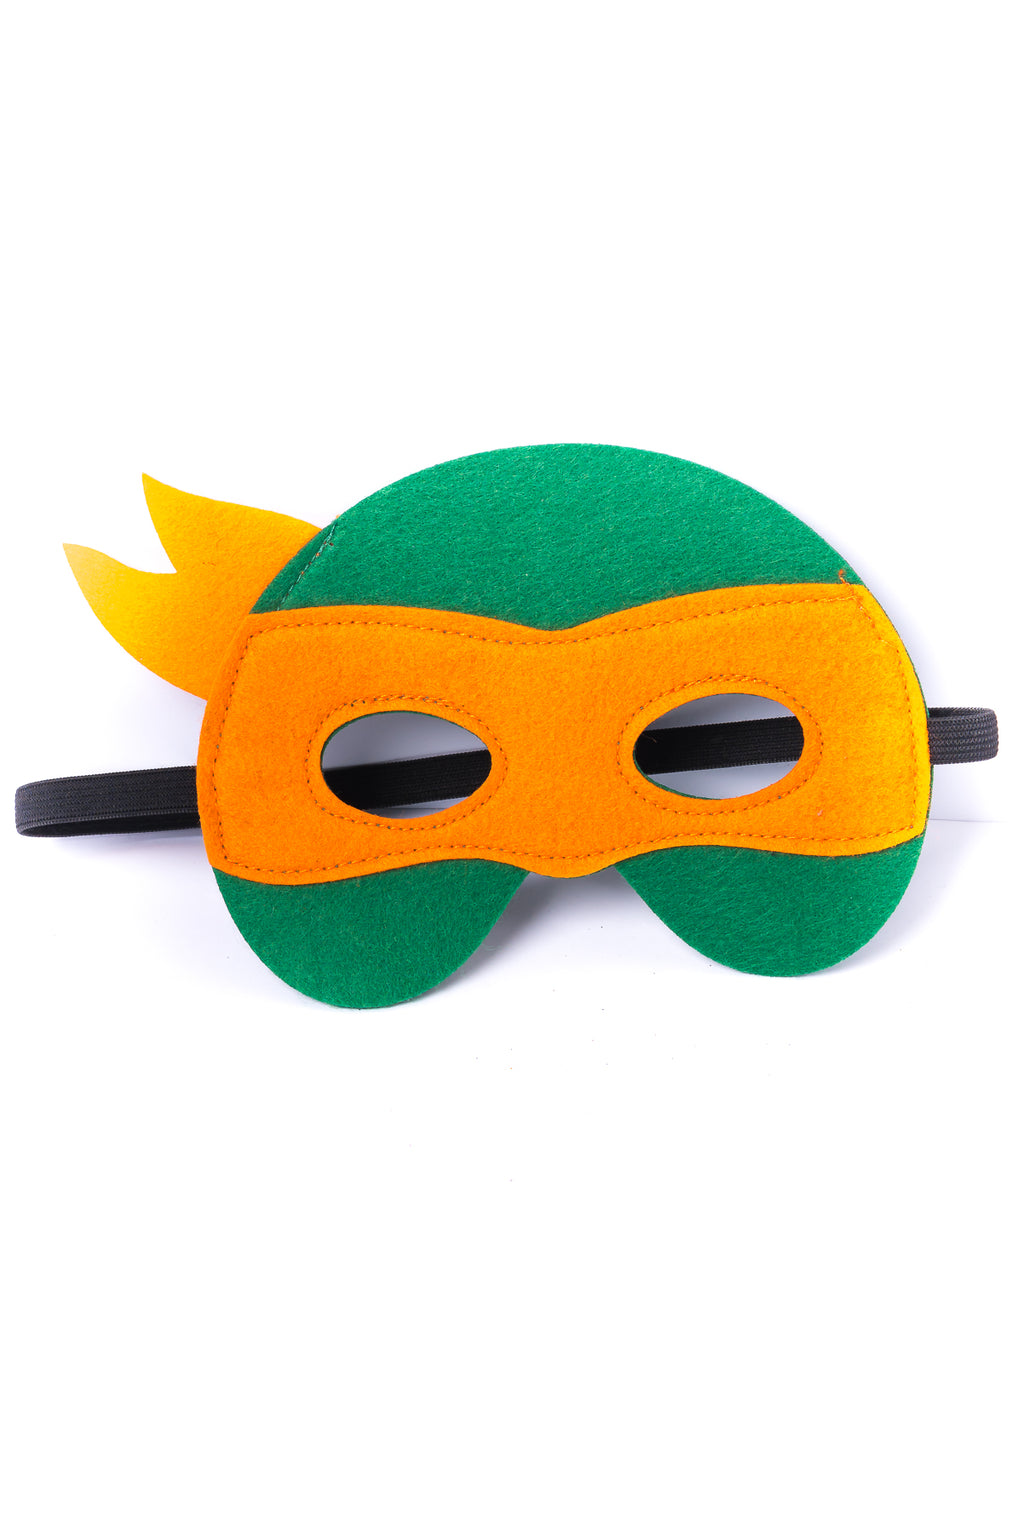 Kids Ninja Turtles Felt Mask